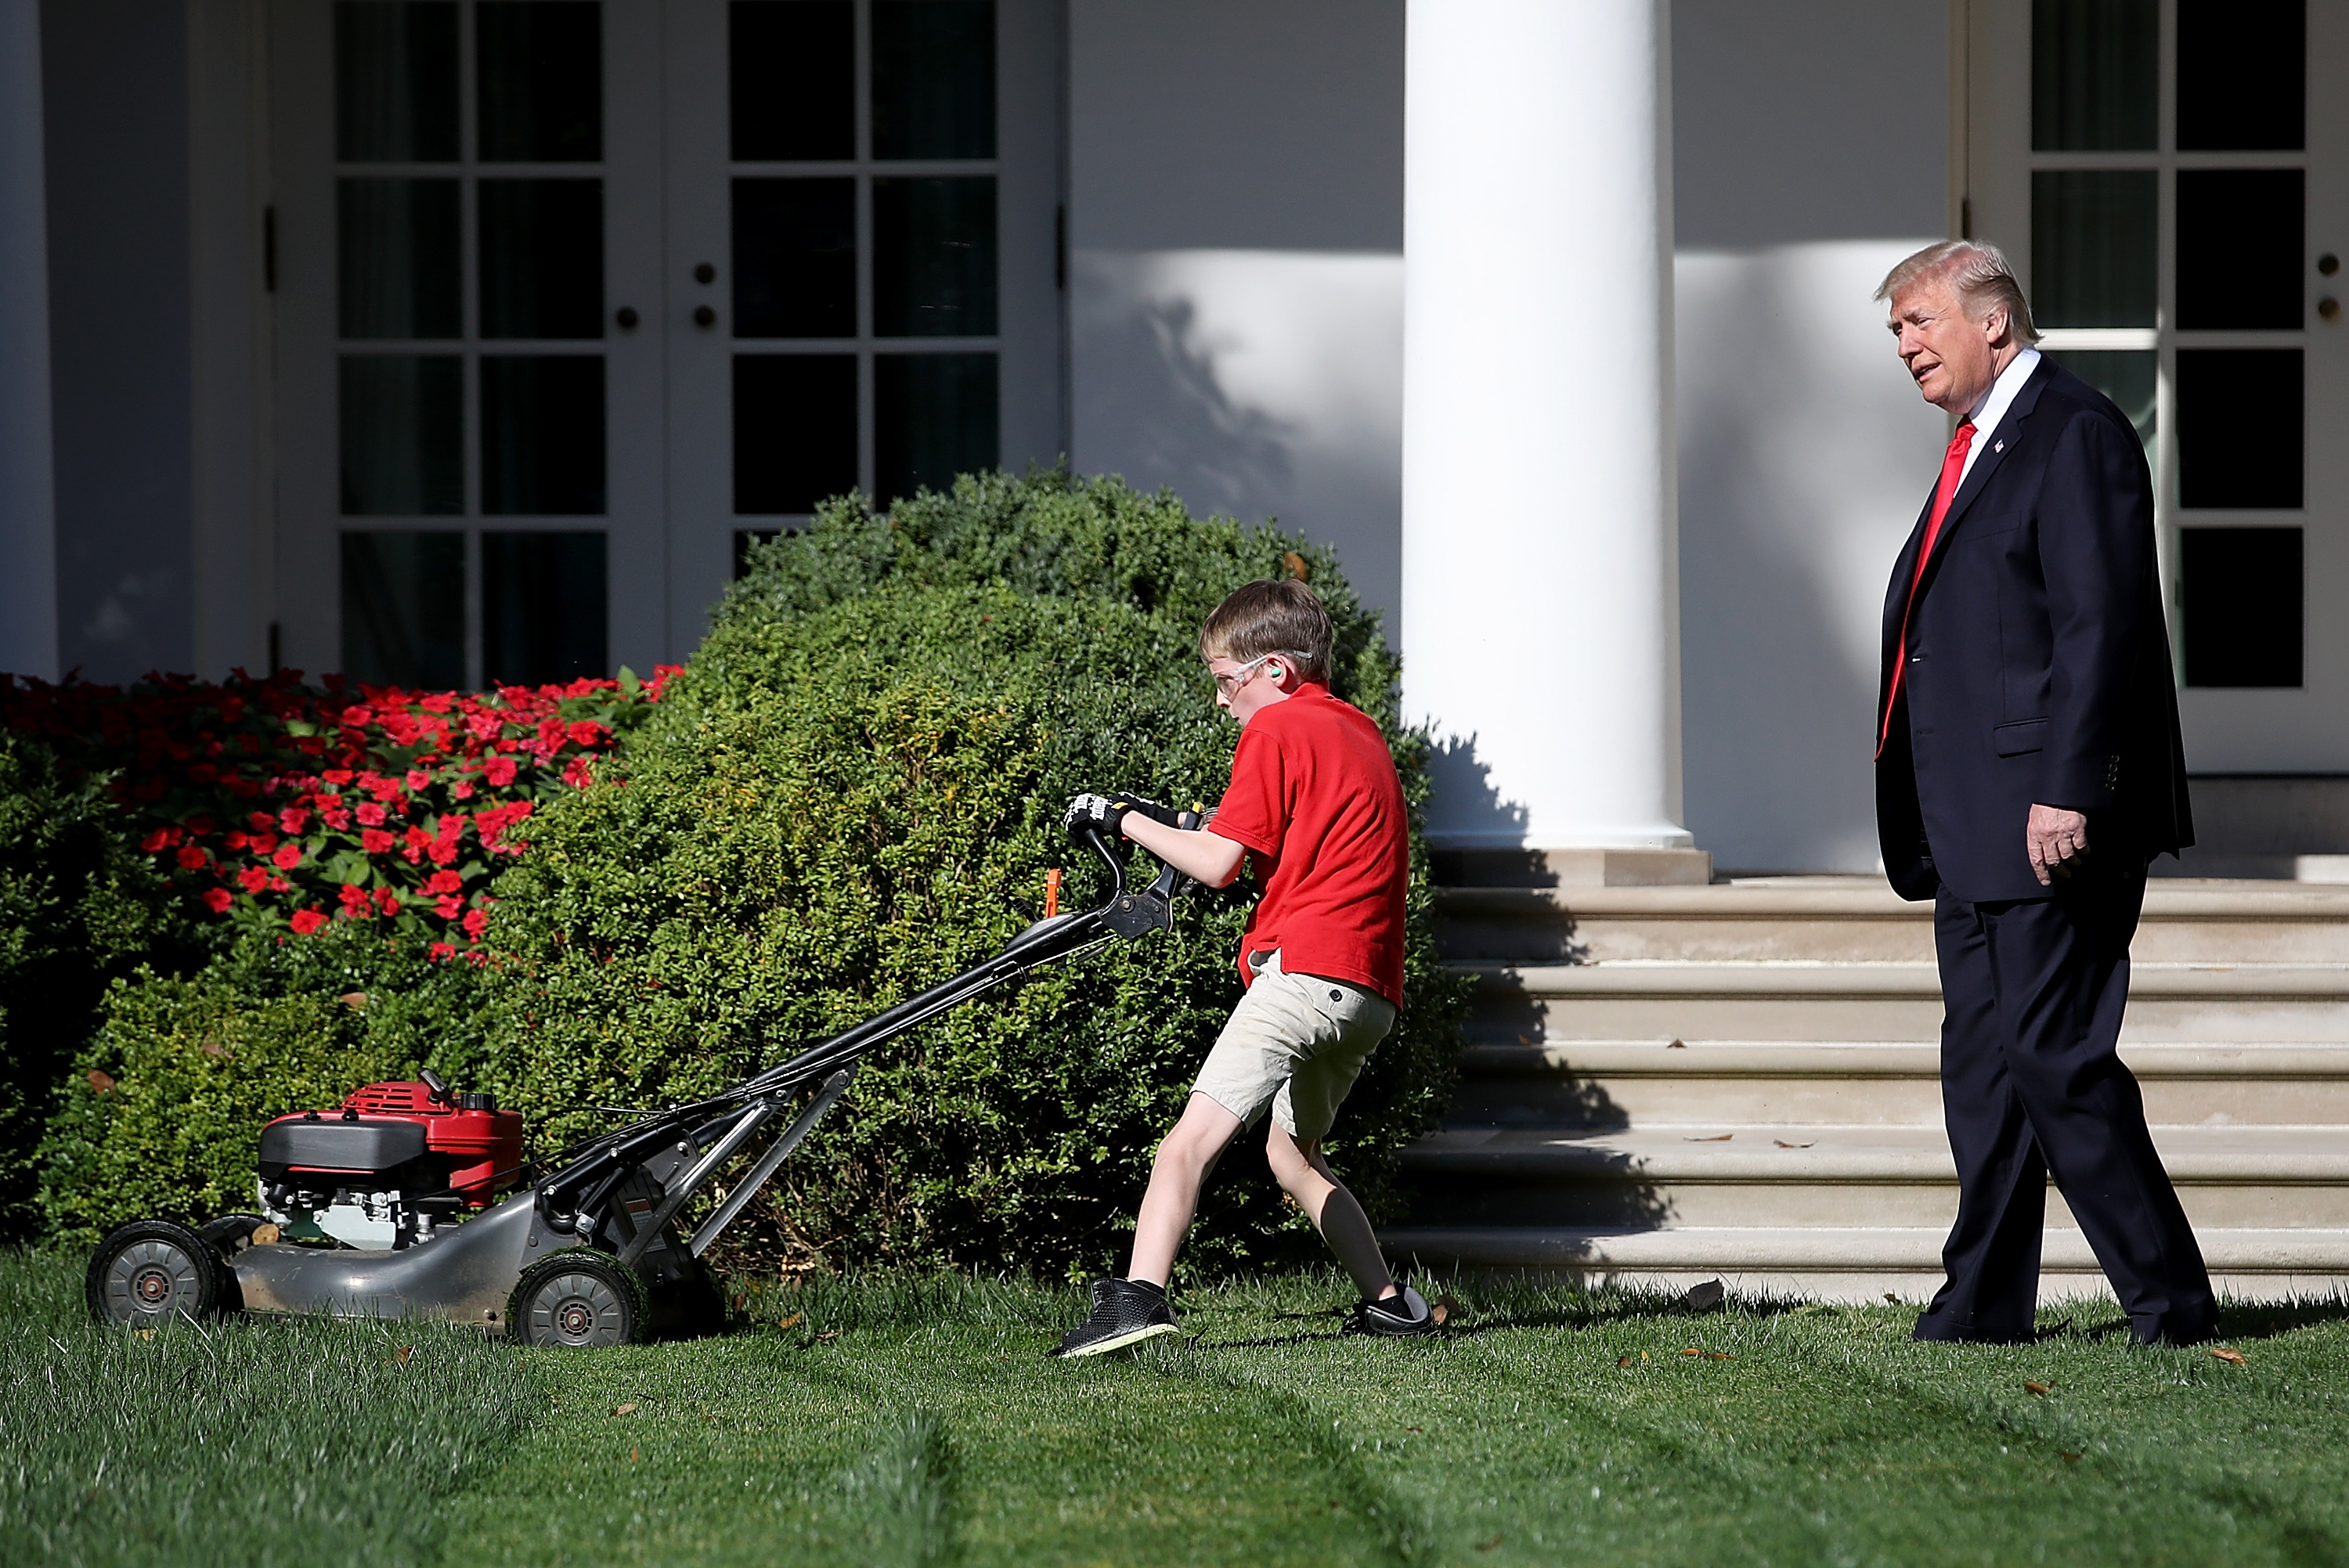 """WASHINGTON, DC - SEPTEMBER 15: U.S. President Donald Trump (R) watches as 11-year-old Frank """"FX"""" Giaccio (L) mows the grass in the Rose Garden of the White House September 15, 2017 in Washington, DC. Giaccio, from Falls Church, Virginia, who runs a business called FX Mowing, wrote a letter to Trump expressing admiration for Trump's business background and offered to mow the White House grass. (Photo by Win McNamee/Getty Images)"""